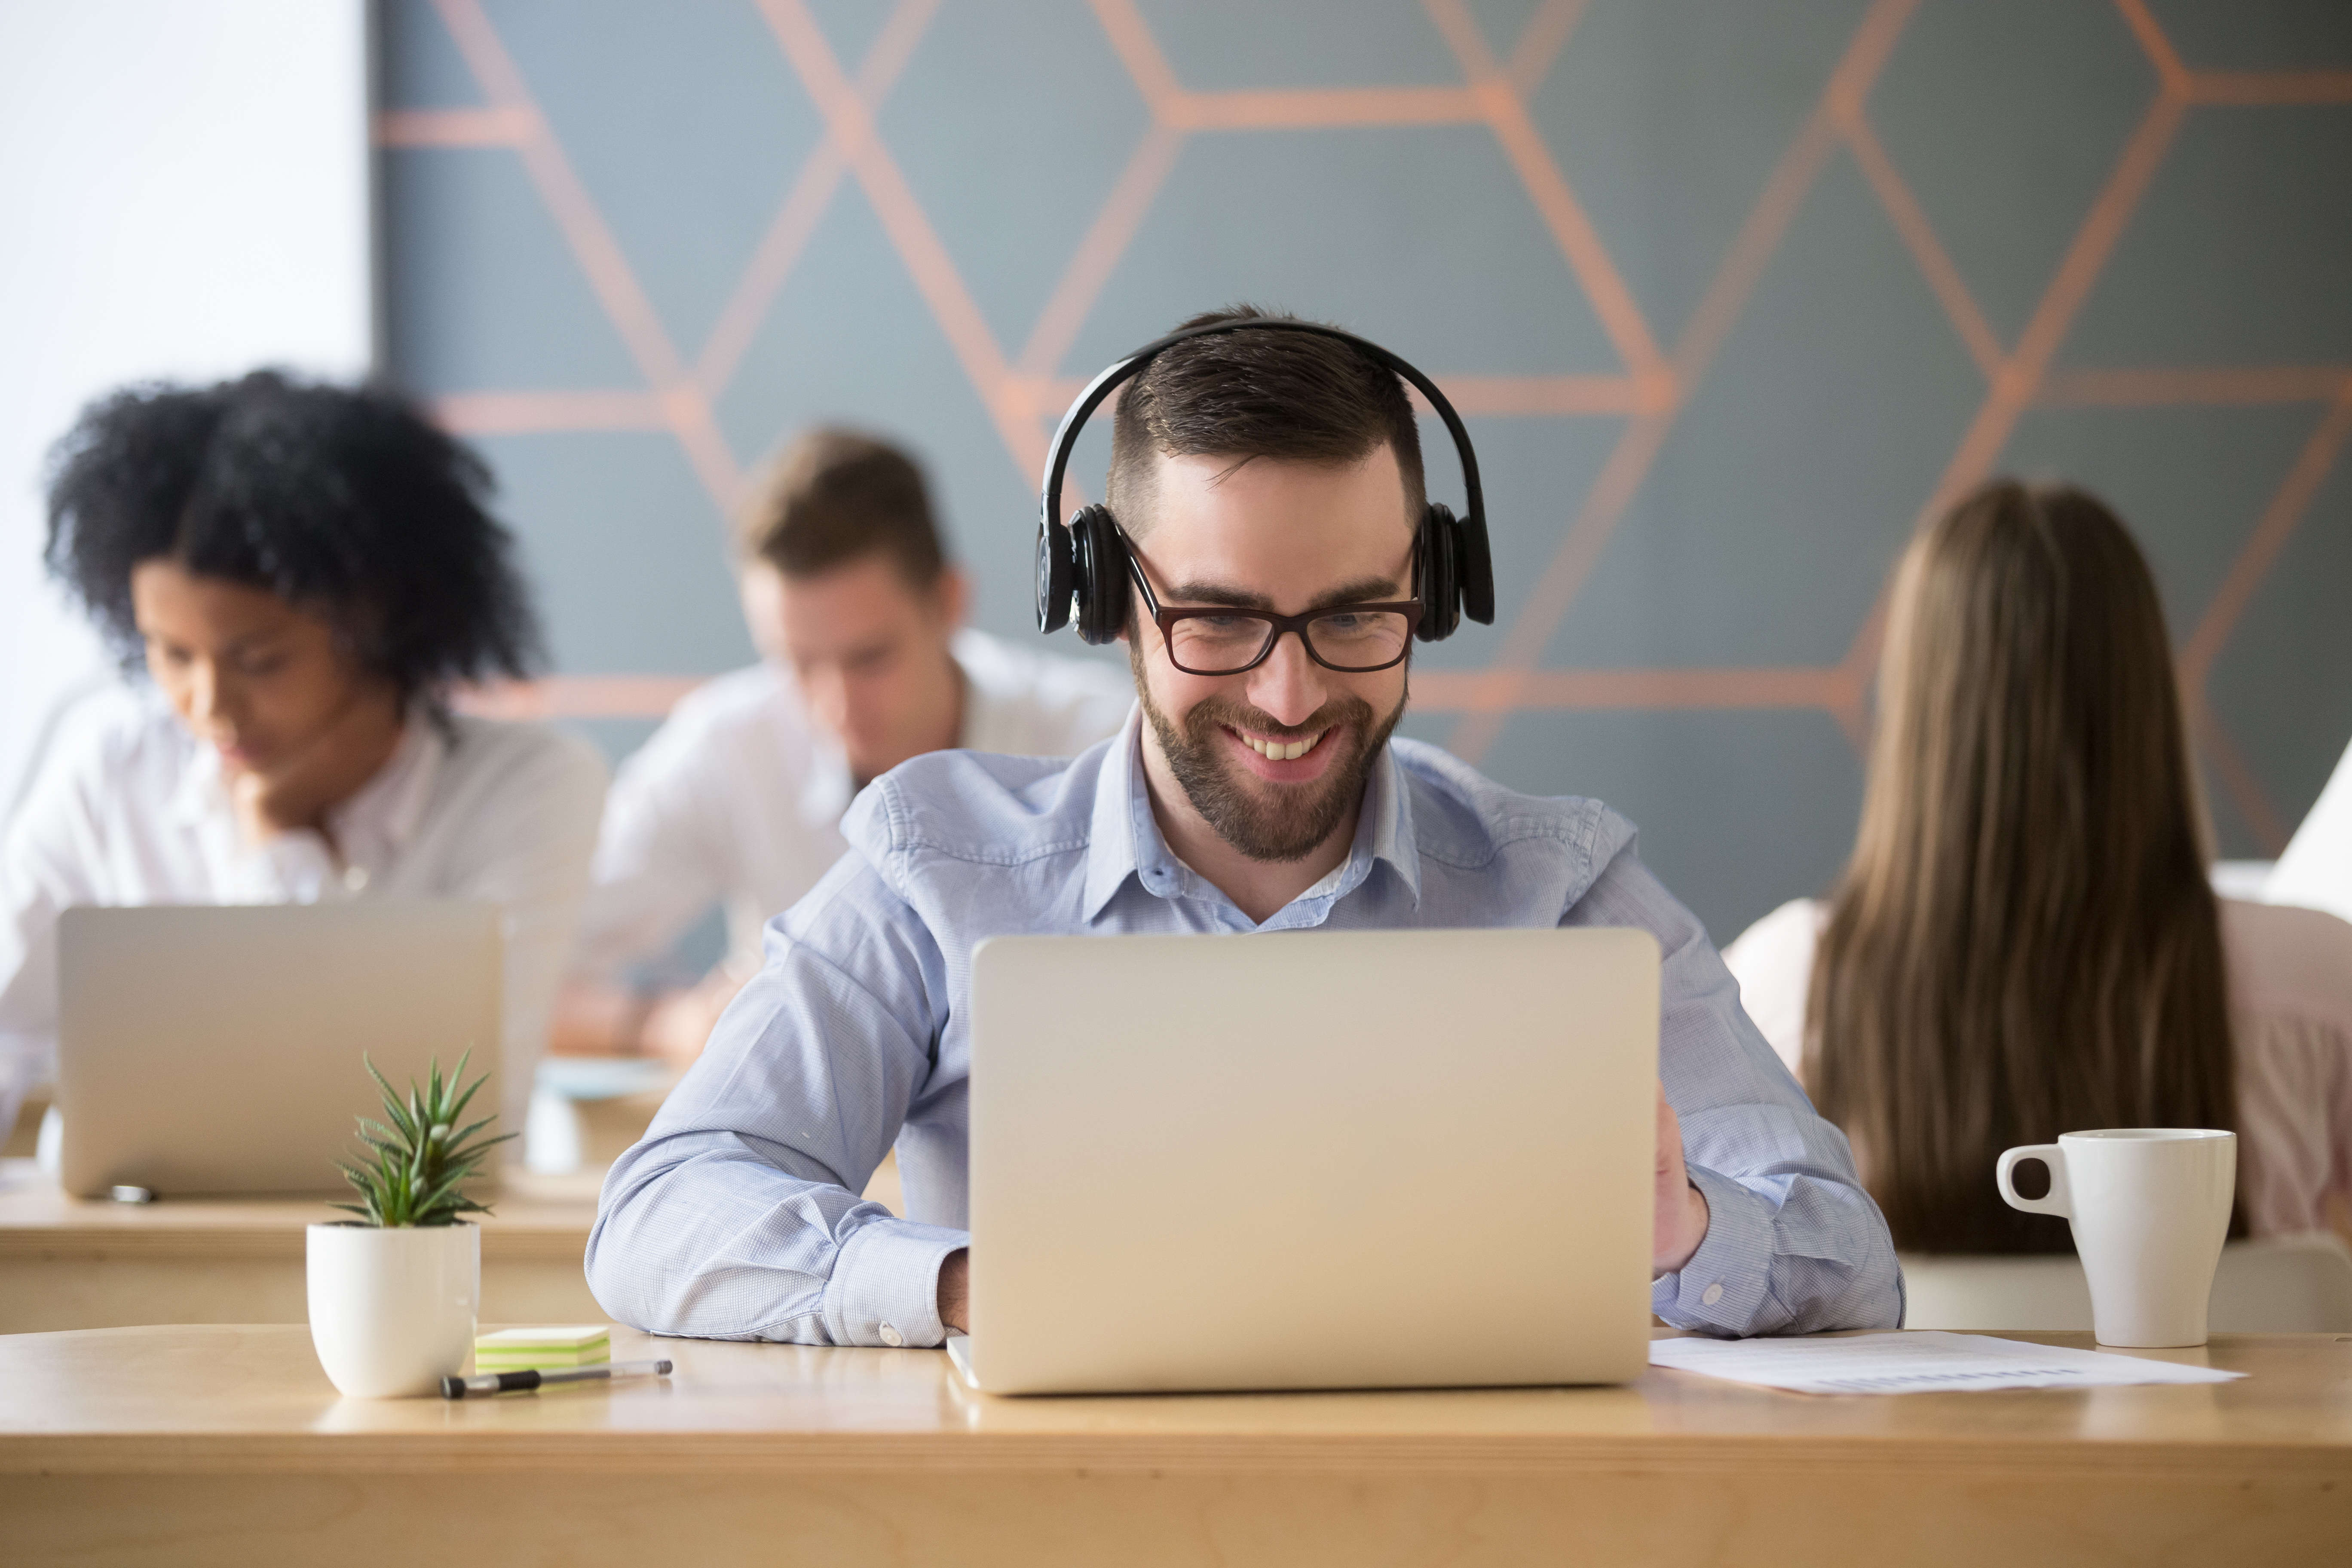 Smiling businessman wearing headphones watching video or consult